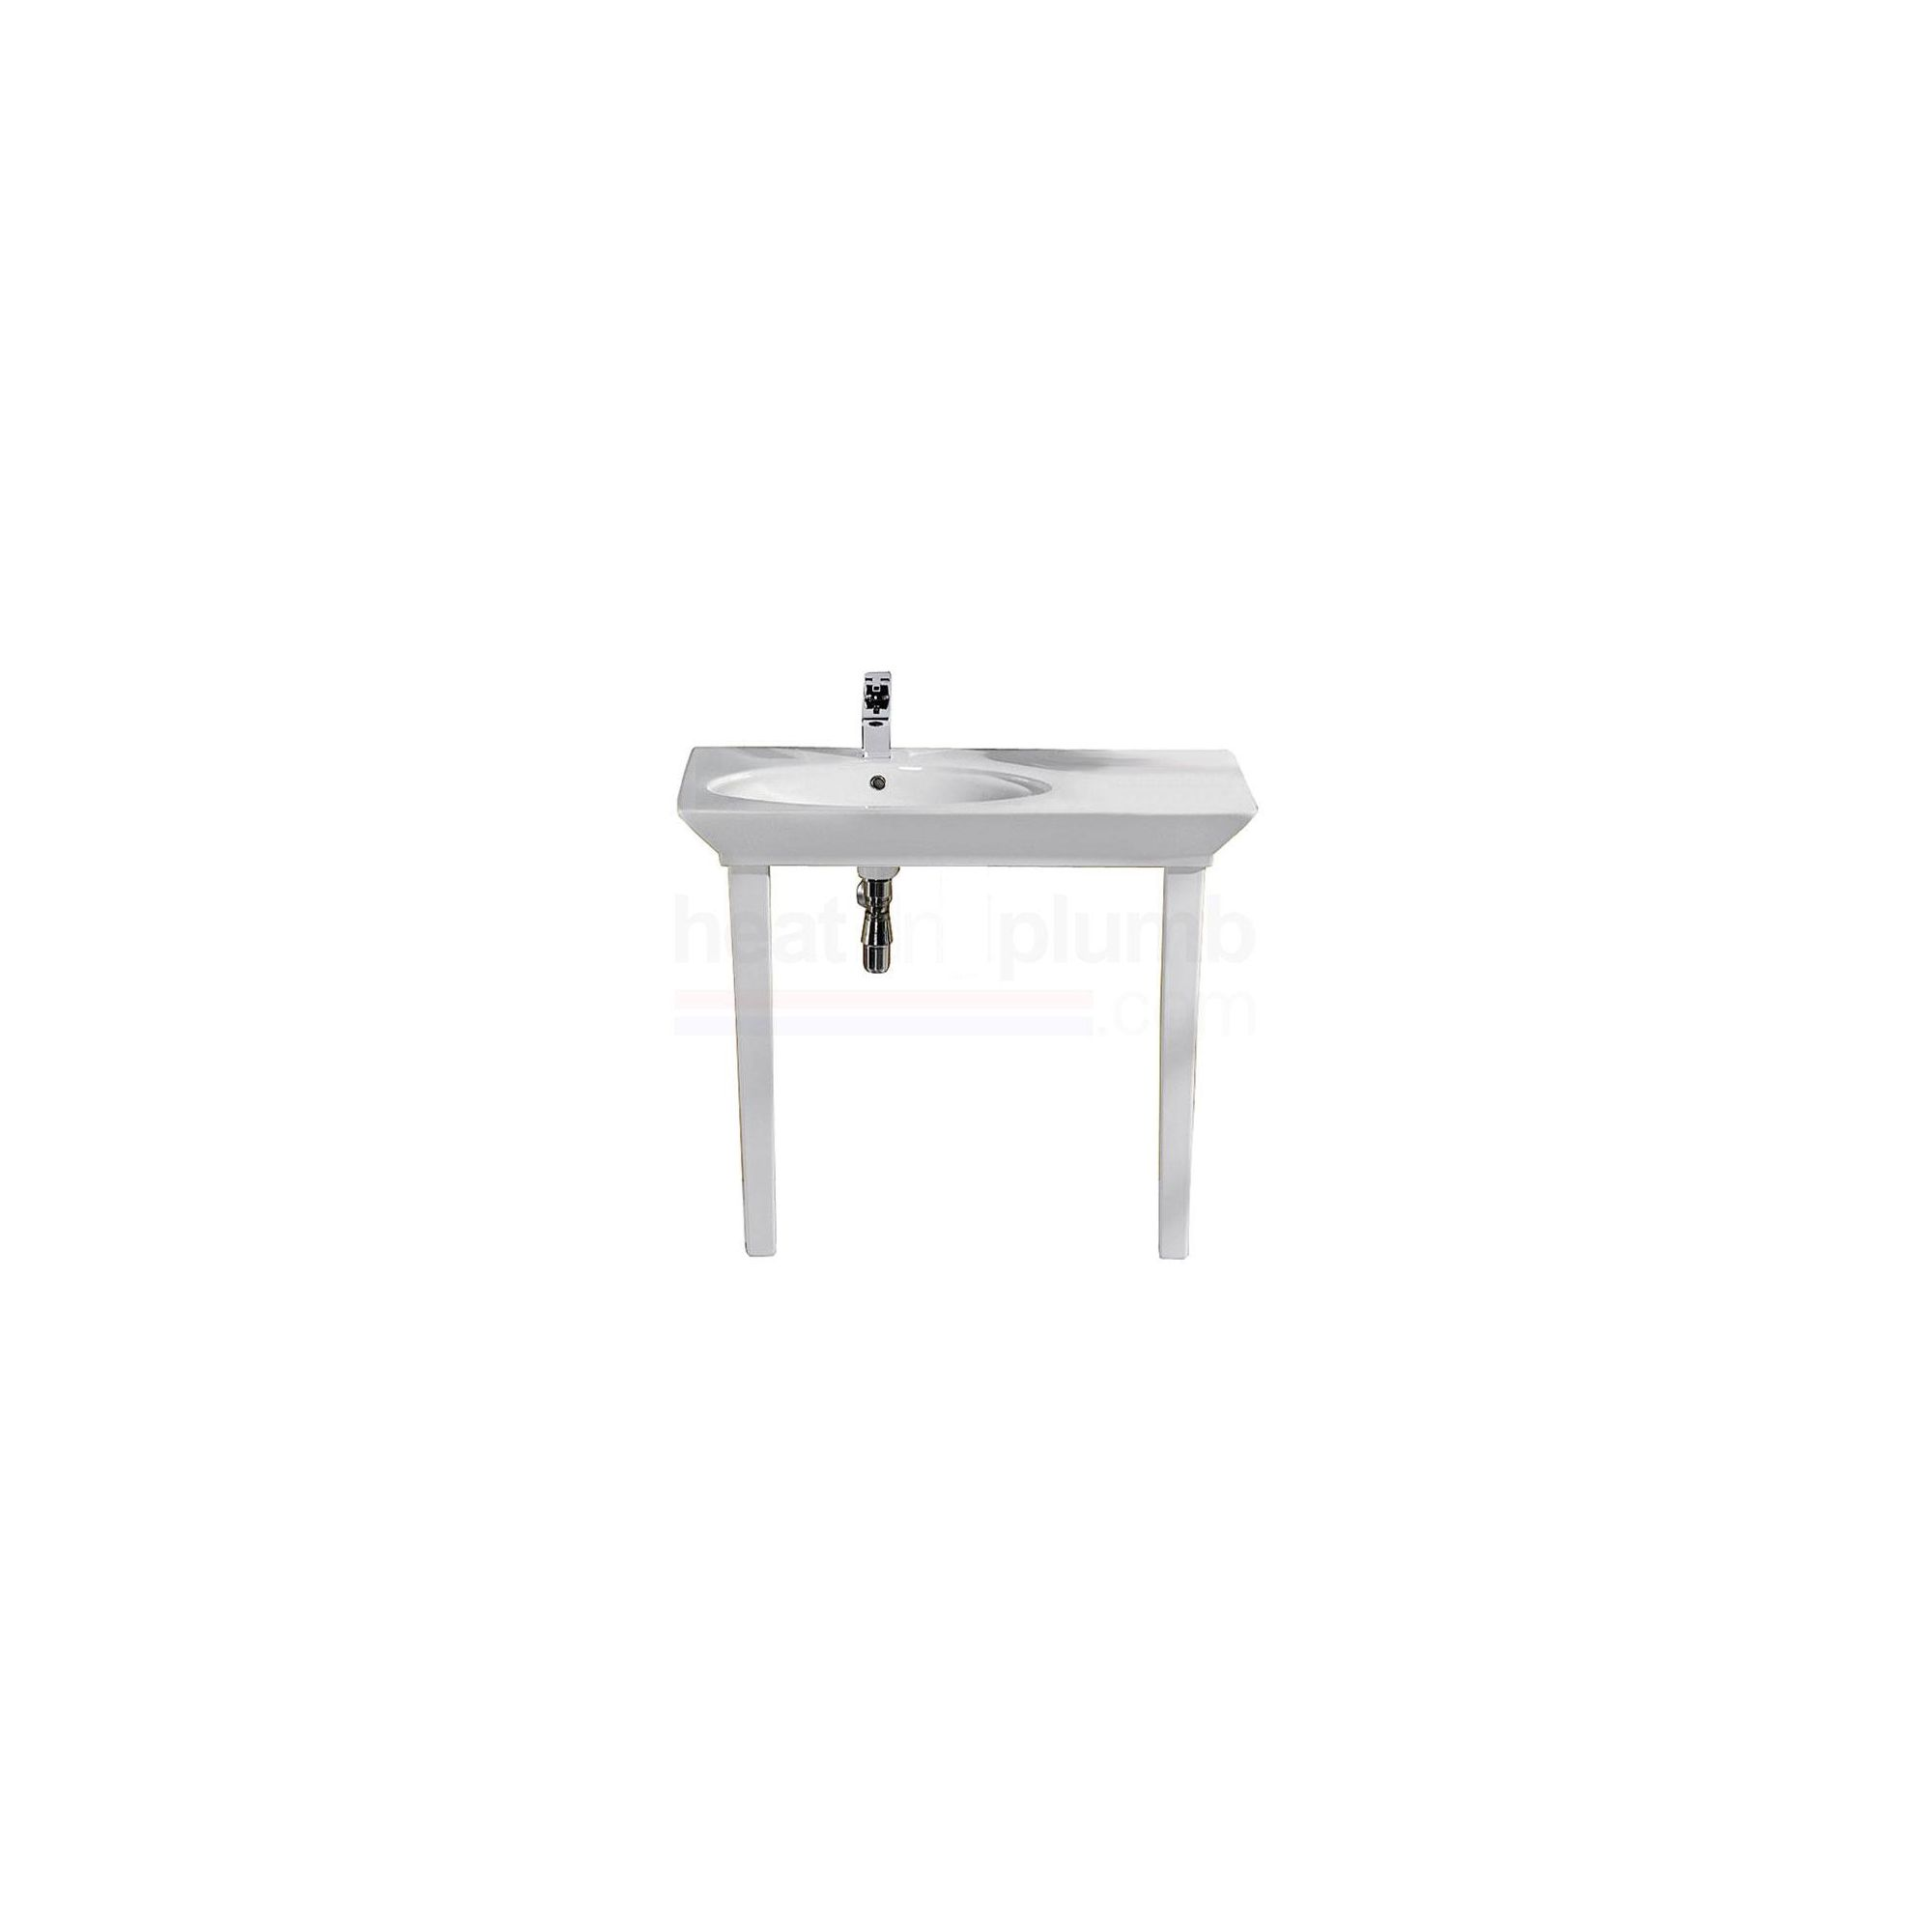 RAK Opulence White 'Her' 1 Piece Countertop Basin with Legs 800mm Wide at Tesco Direct